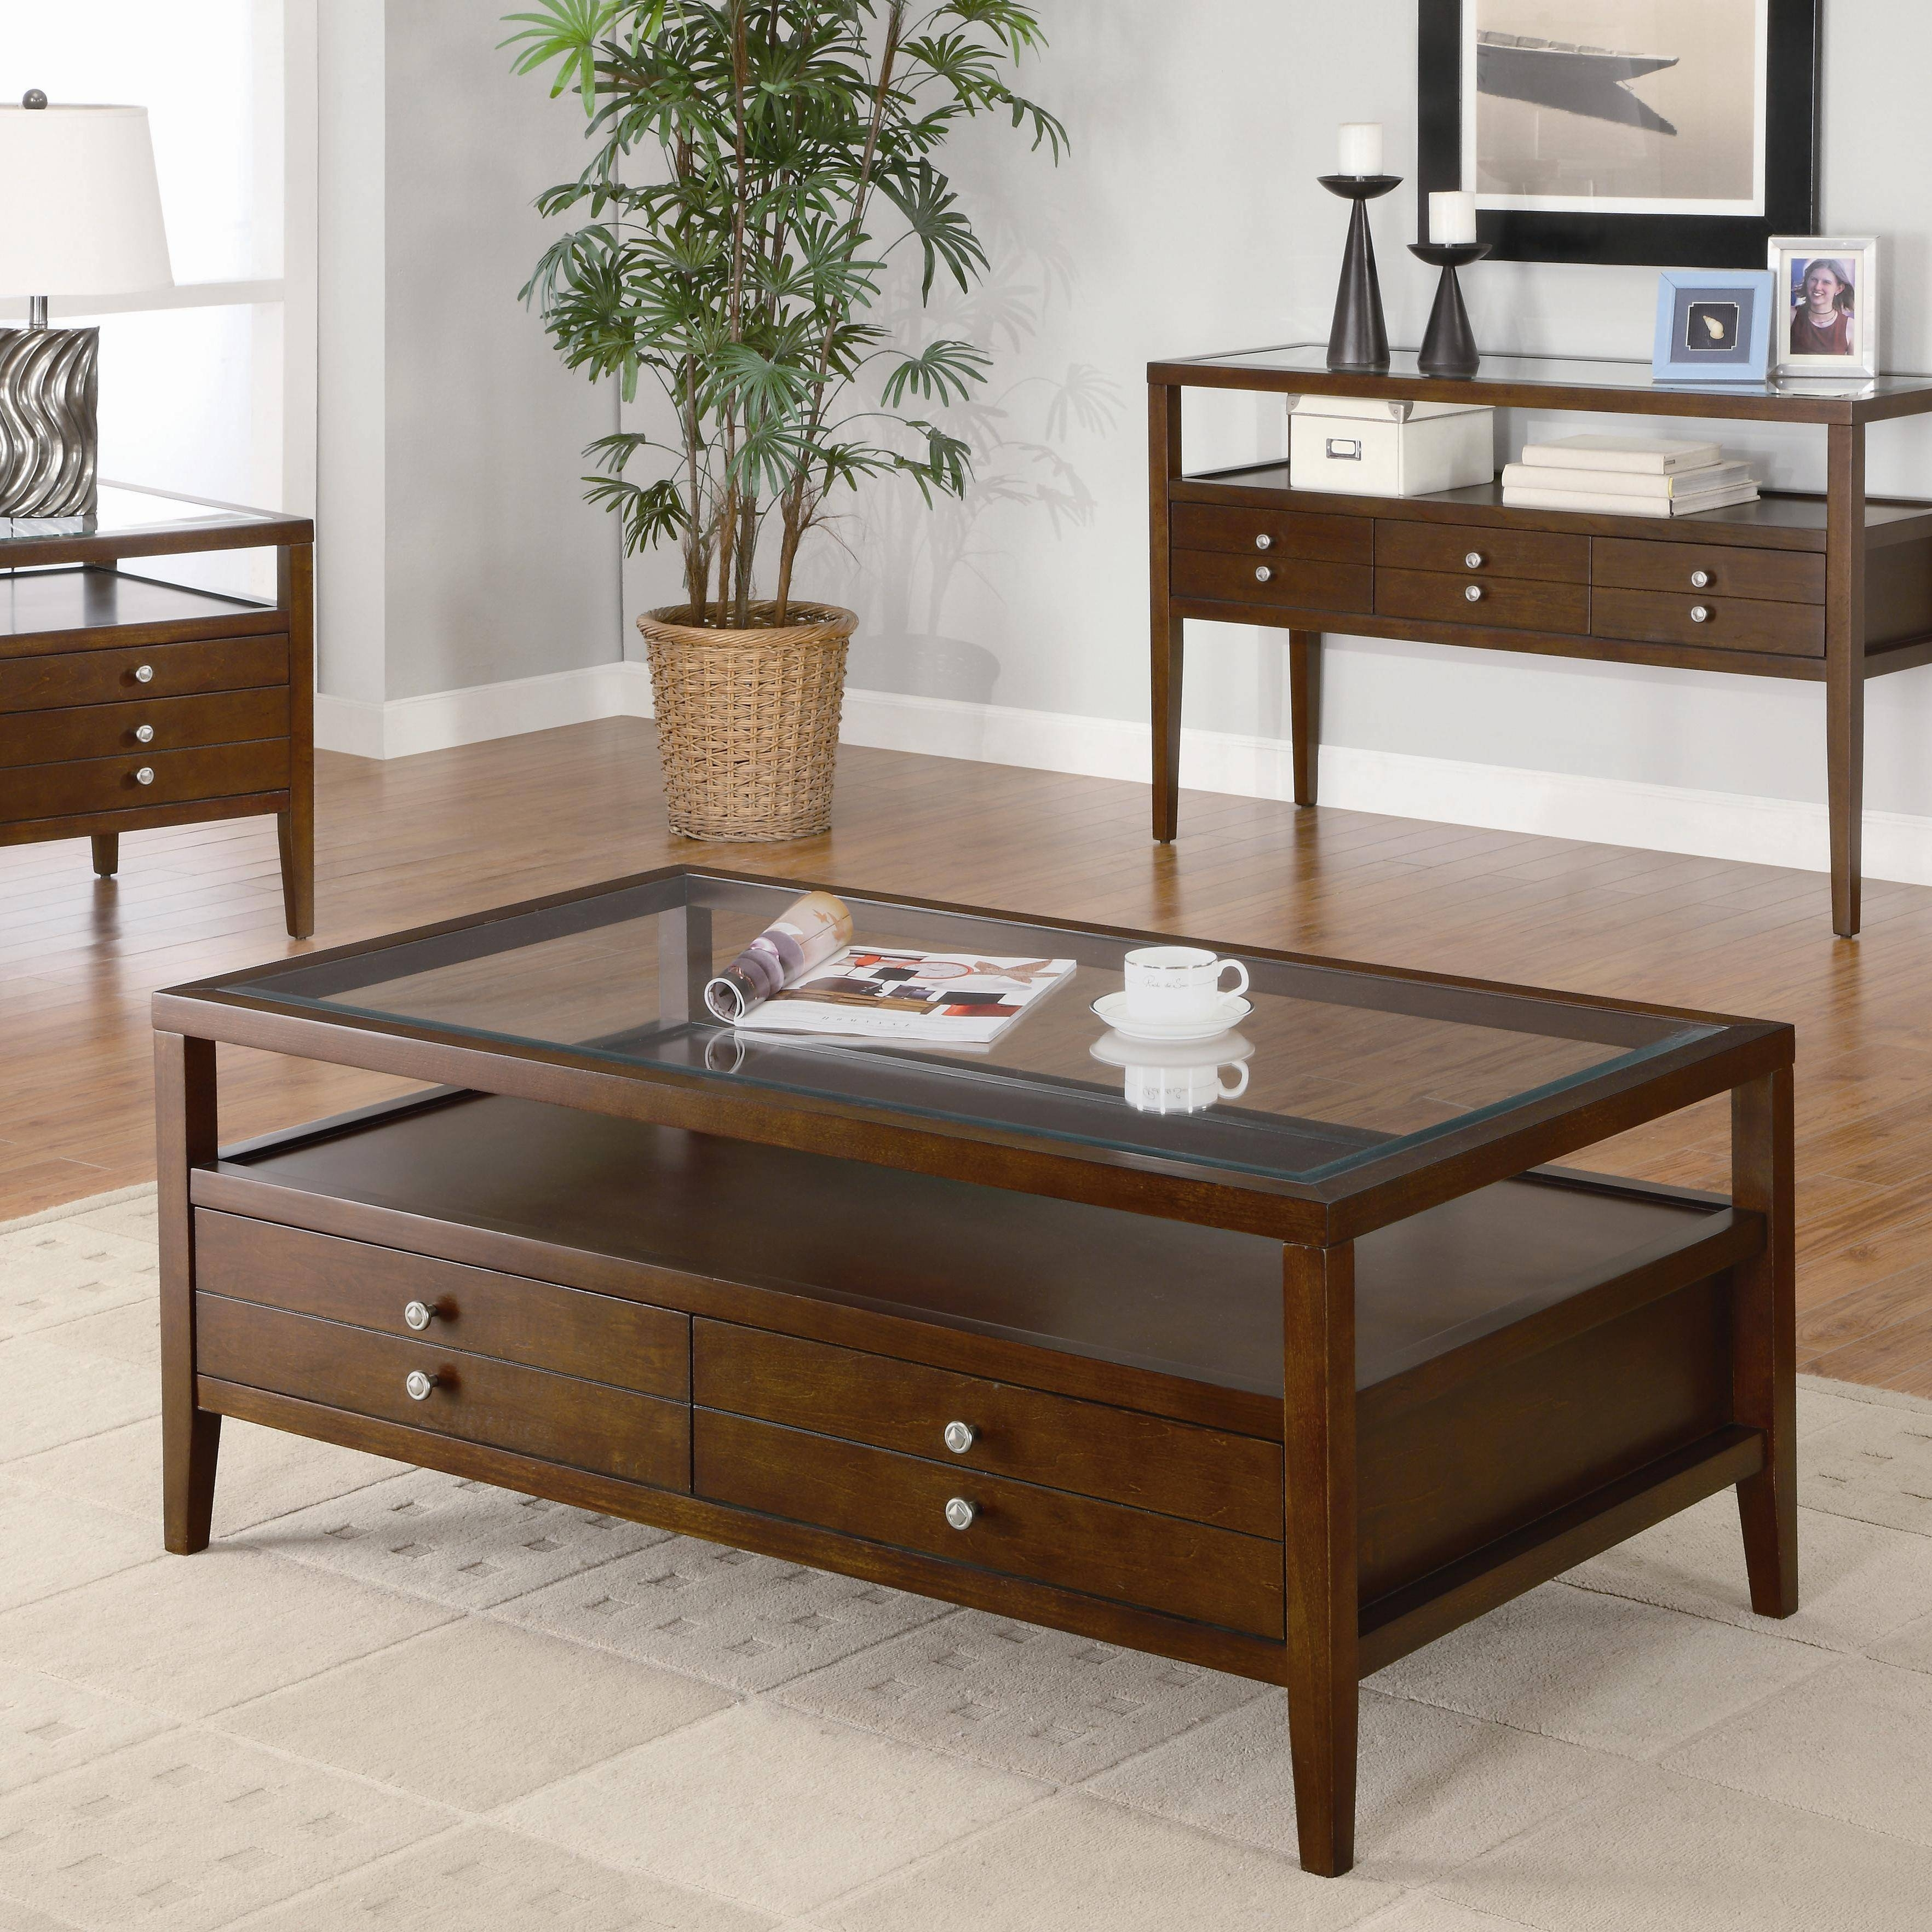 Coffee Tables Ideas: Creative Ideas Coffee Table For Living Room within Huge Coffee Tables (Image 5 of 15)